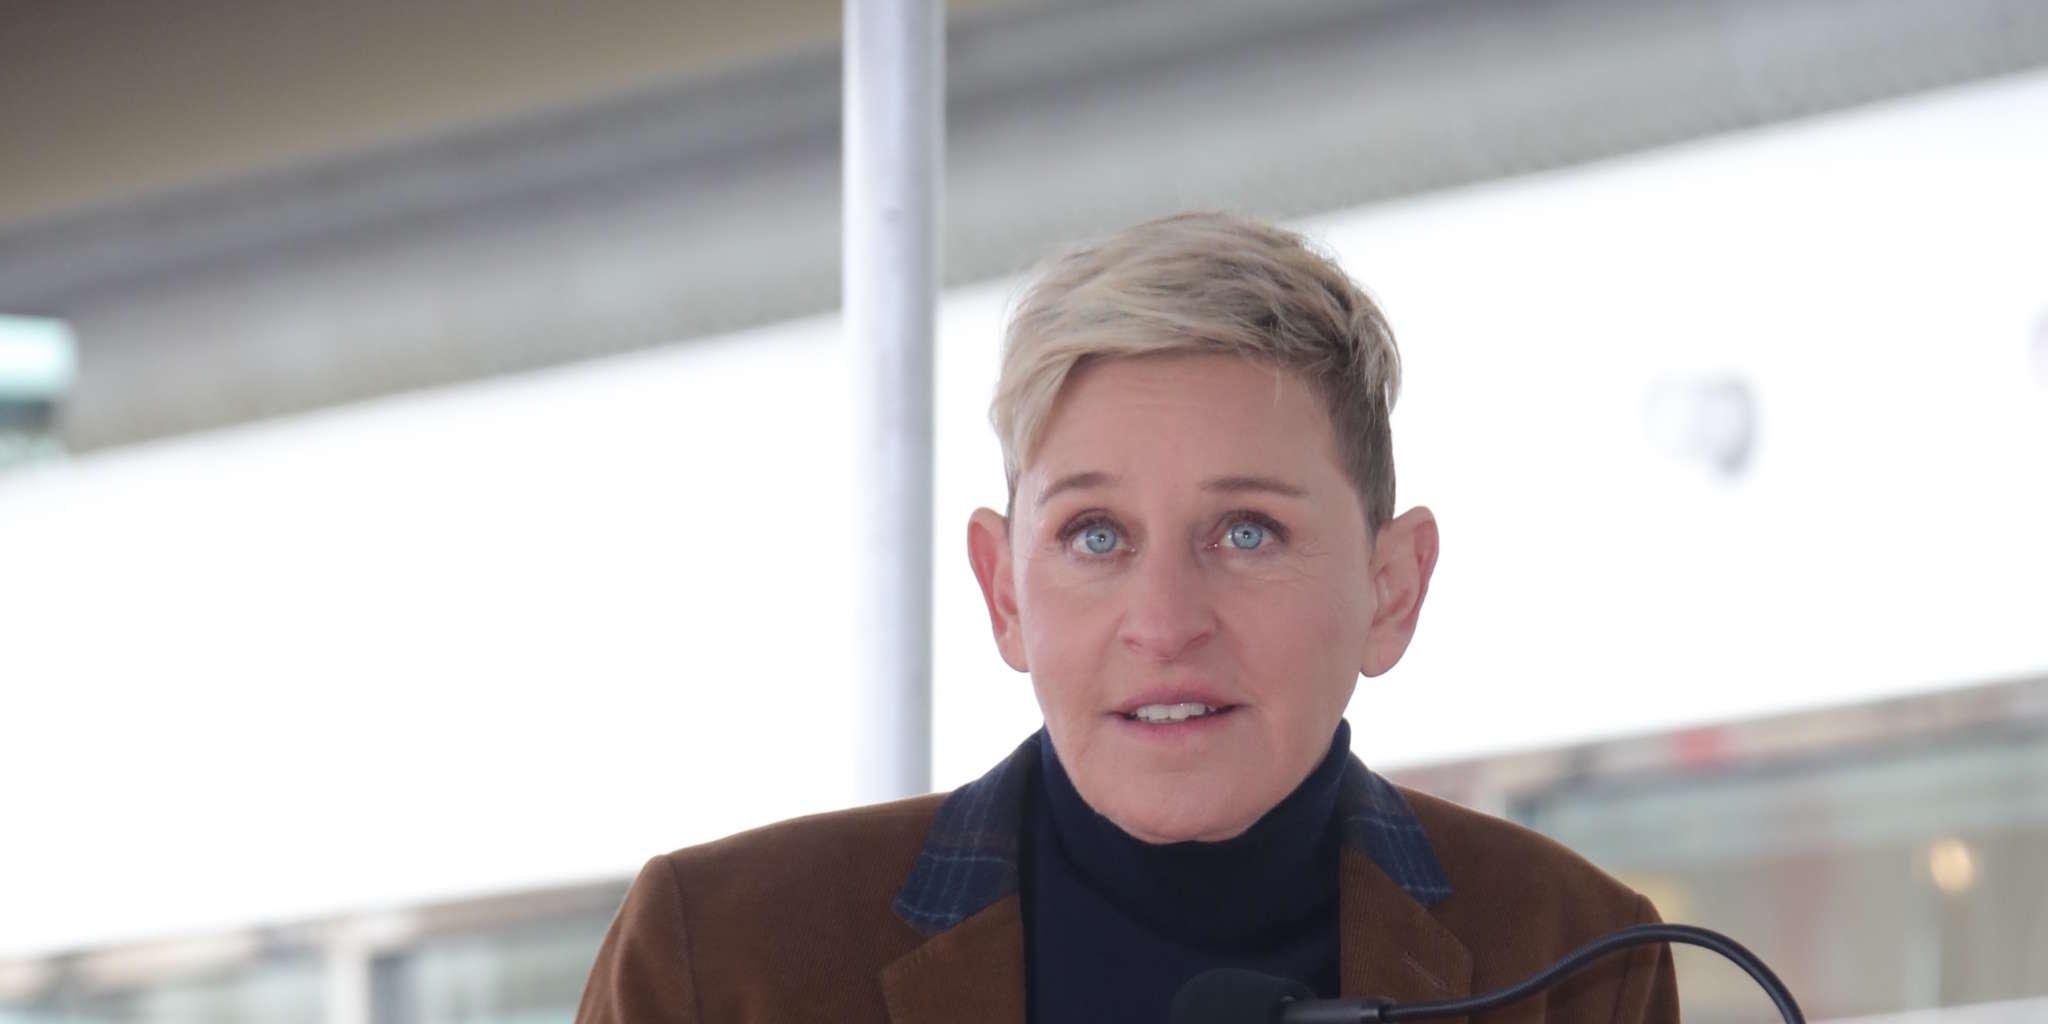 Ellen Degeneres Show Not Cancelled But 'Mean' Rumors Are Hurting Ratings